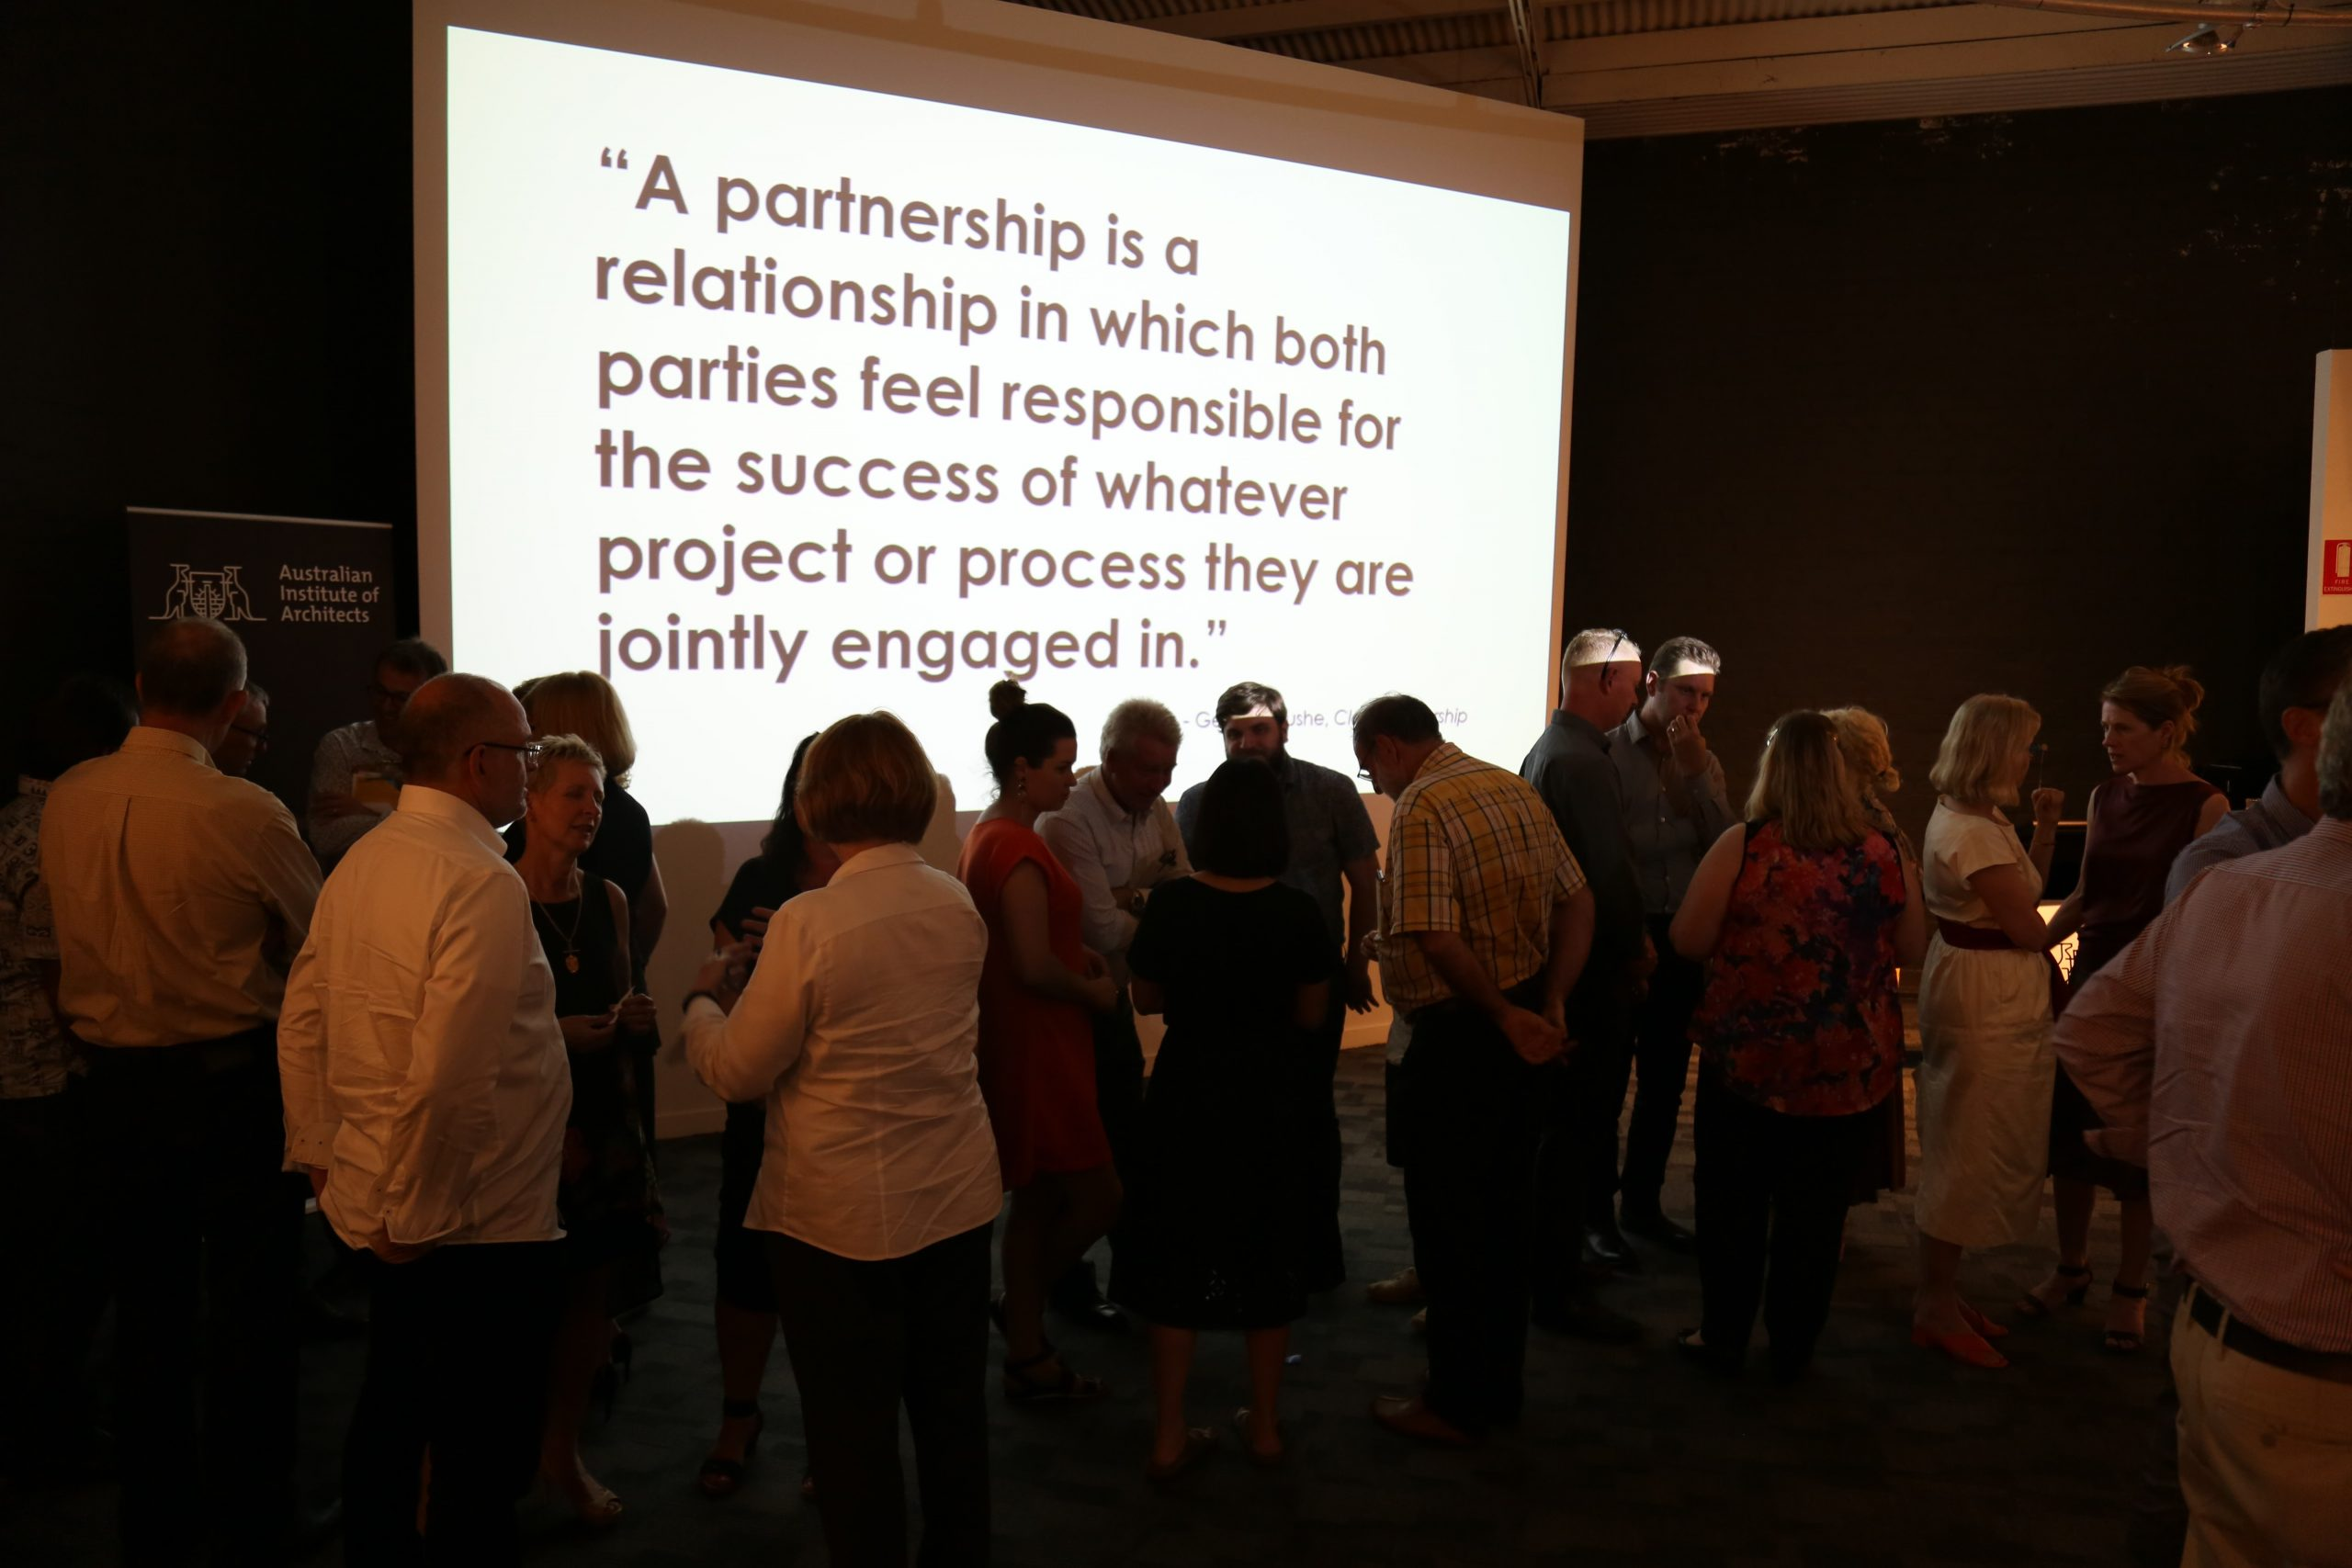 Partnering for Value Creation Pt 2: The Dance